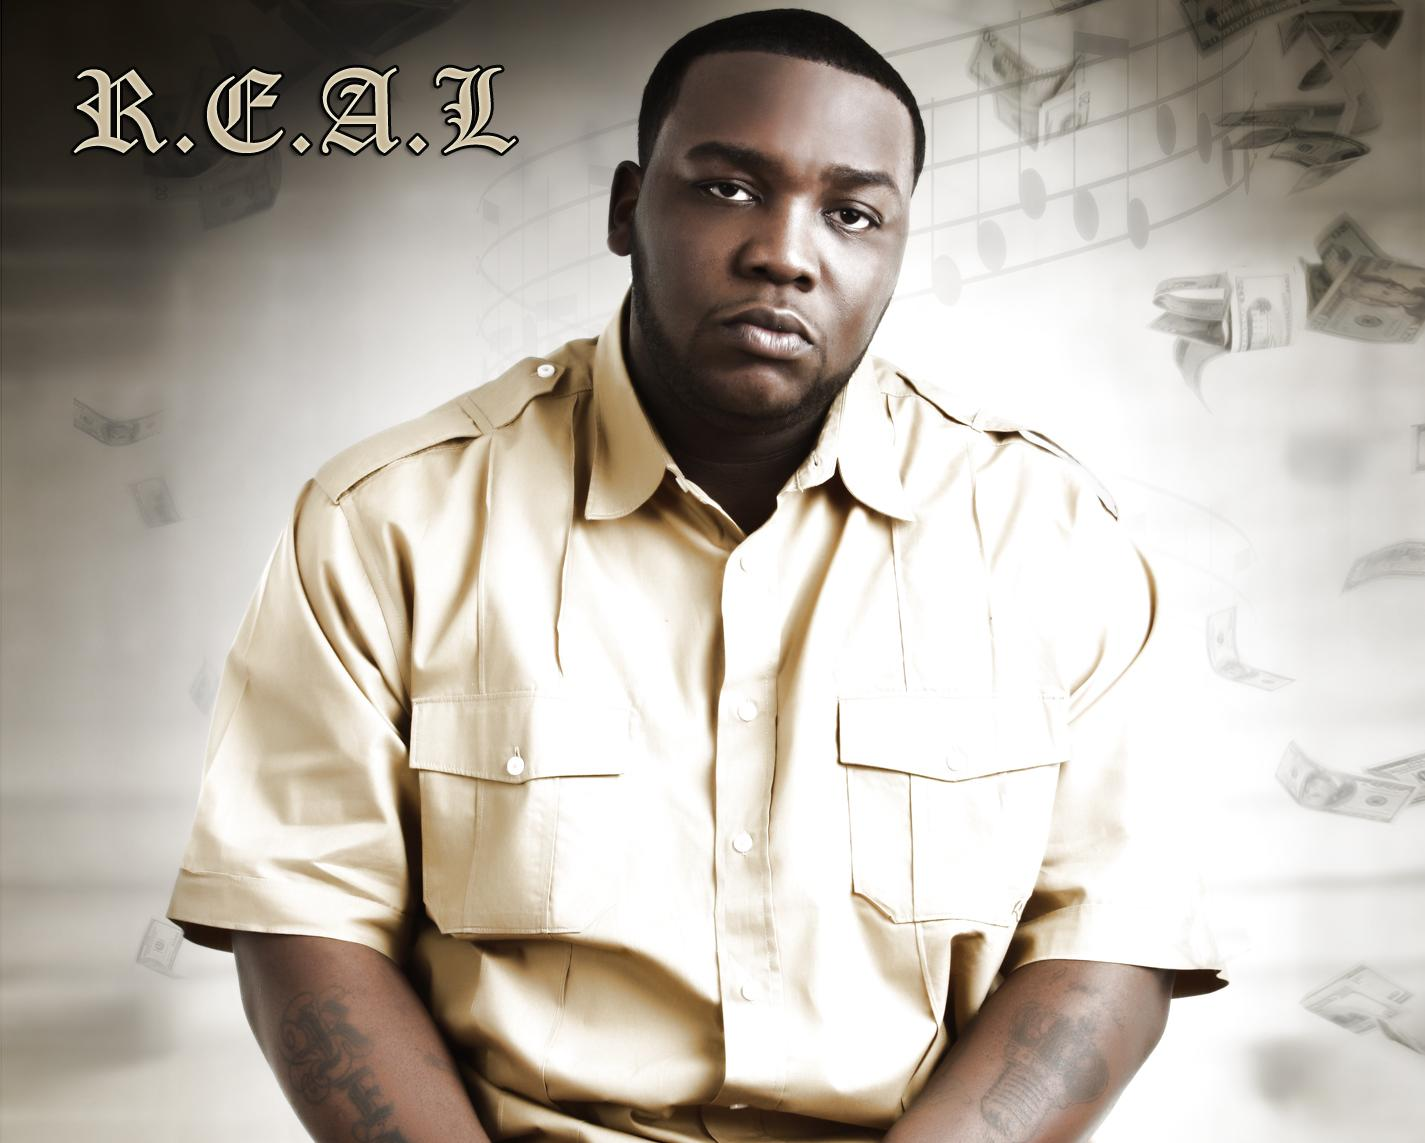 Upcoming Artist Spotlight: R.E.A.L